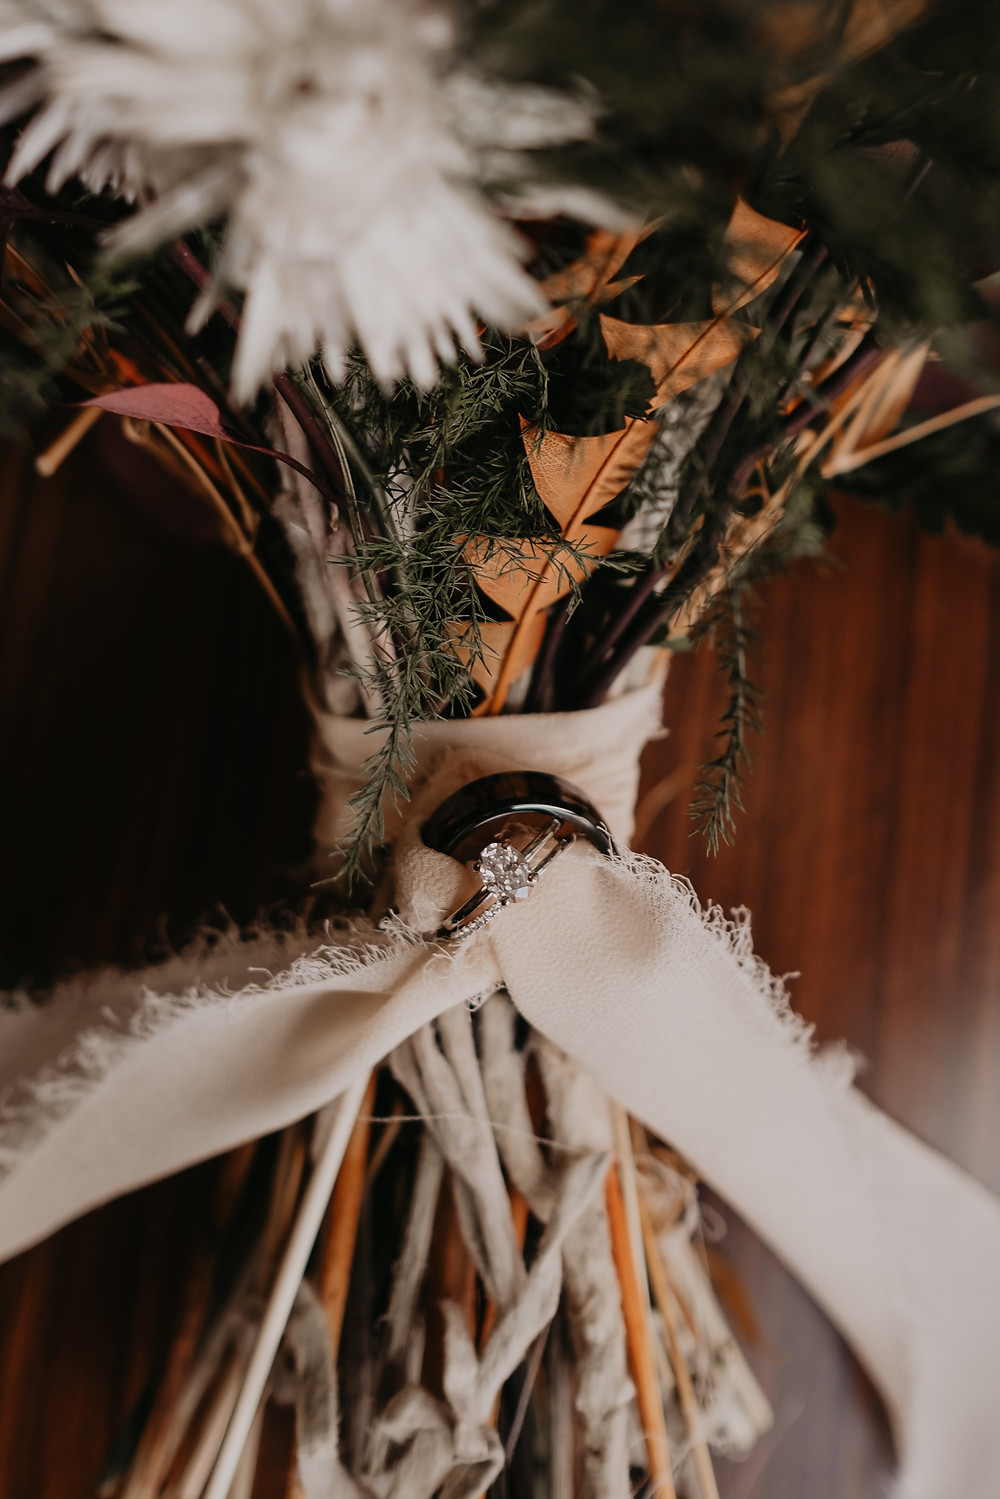 Wedding rings tied around ribbon of bridal bouquet made by The Lost Forty